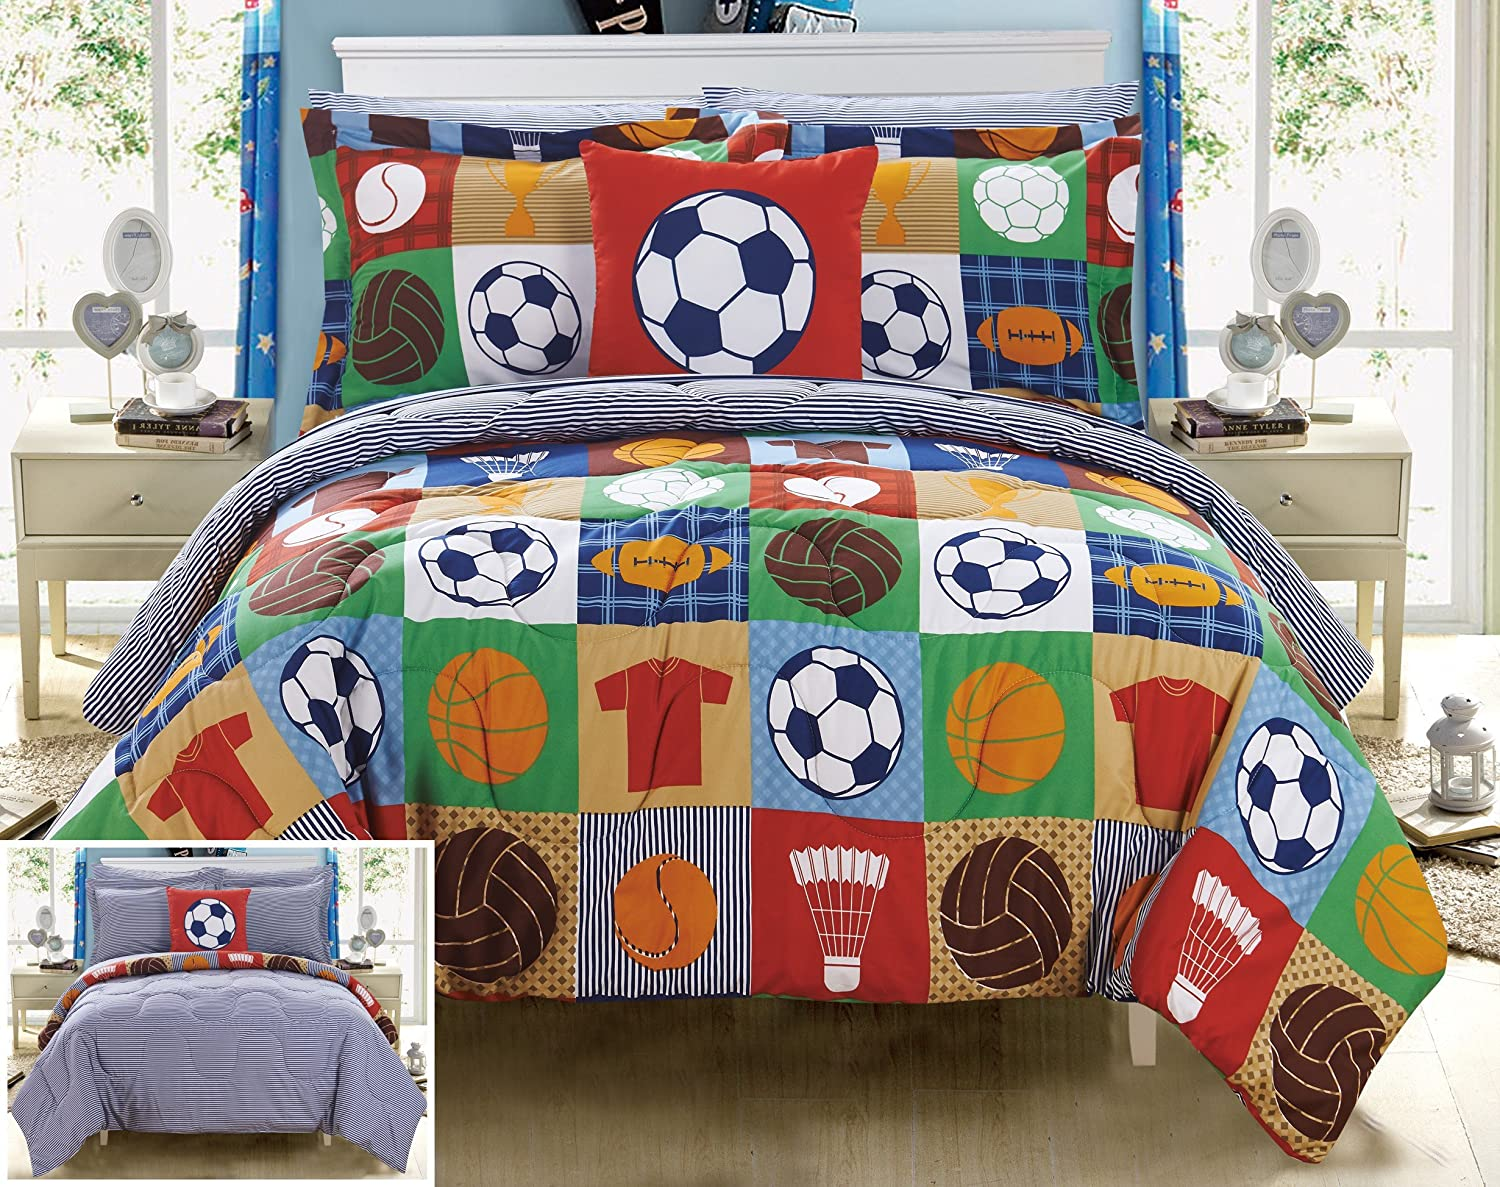 Chic Home Shiloh 8 Piece Reversible Comforter Patchwork Print Athletic Youth Design Bed in a Bag-Sheet Set Decorative Pillow Shams Included Size, Full, Multi Color